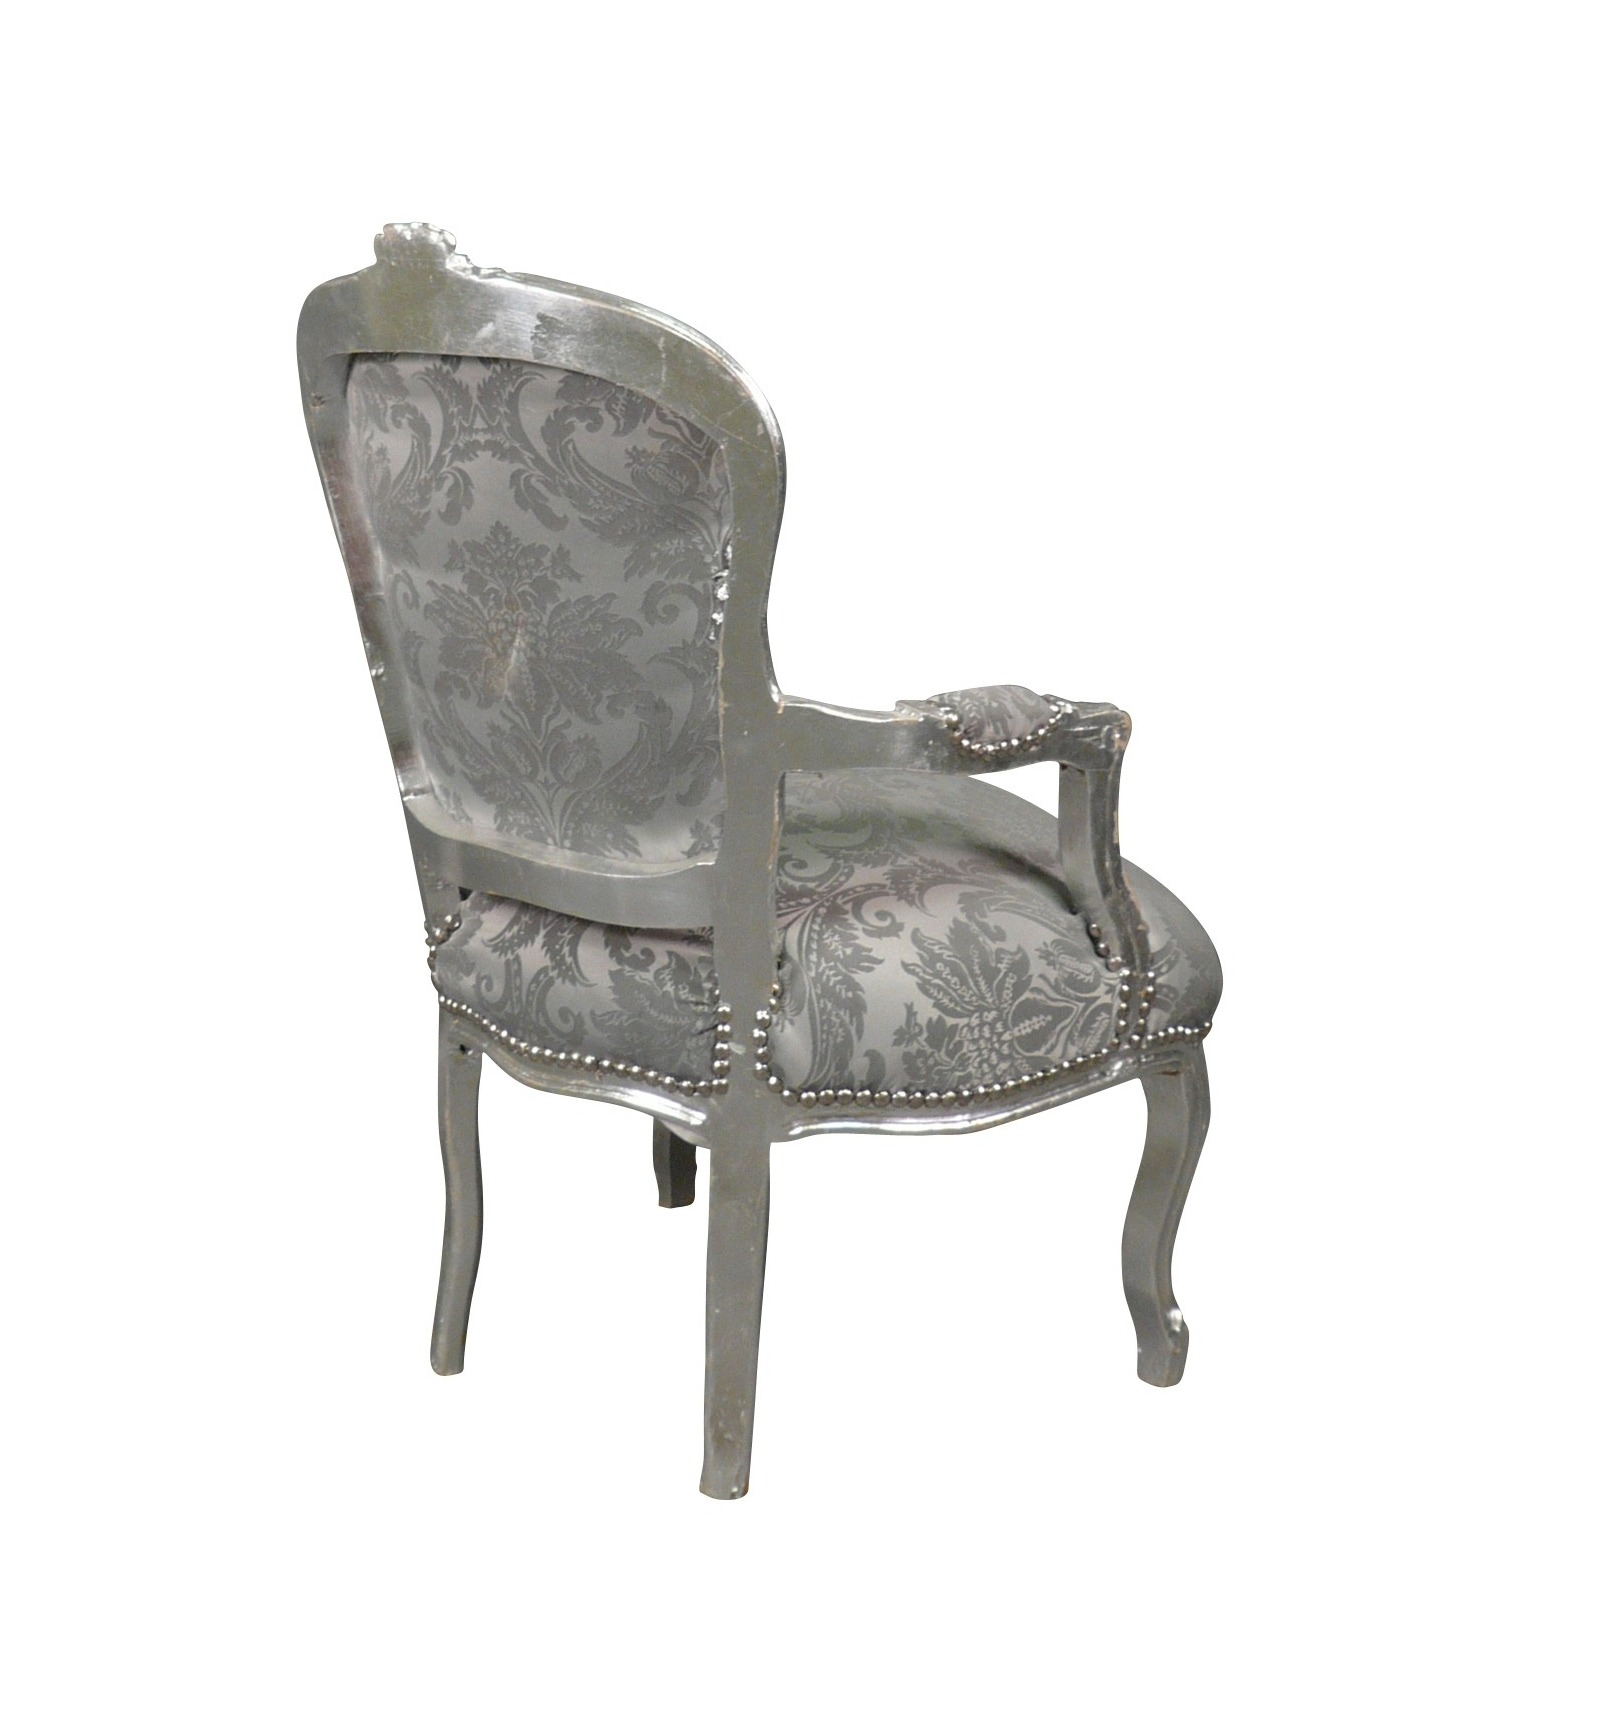 louis xv armchair fabric grey velvet seats style solid wood. Black Bedroom Furniture Sets. Home Design Ideas